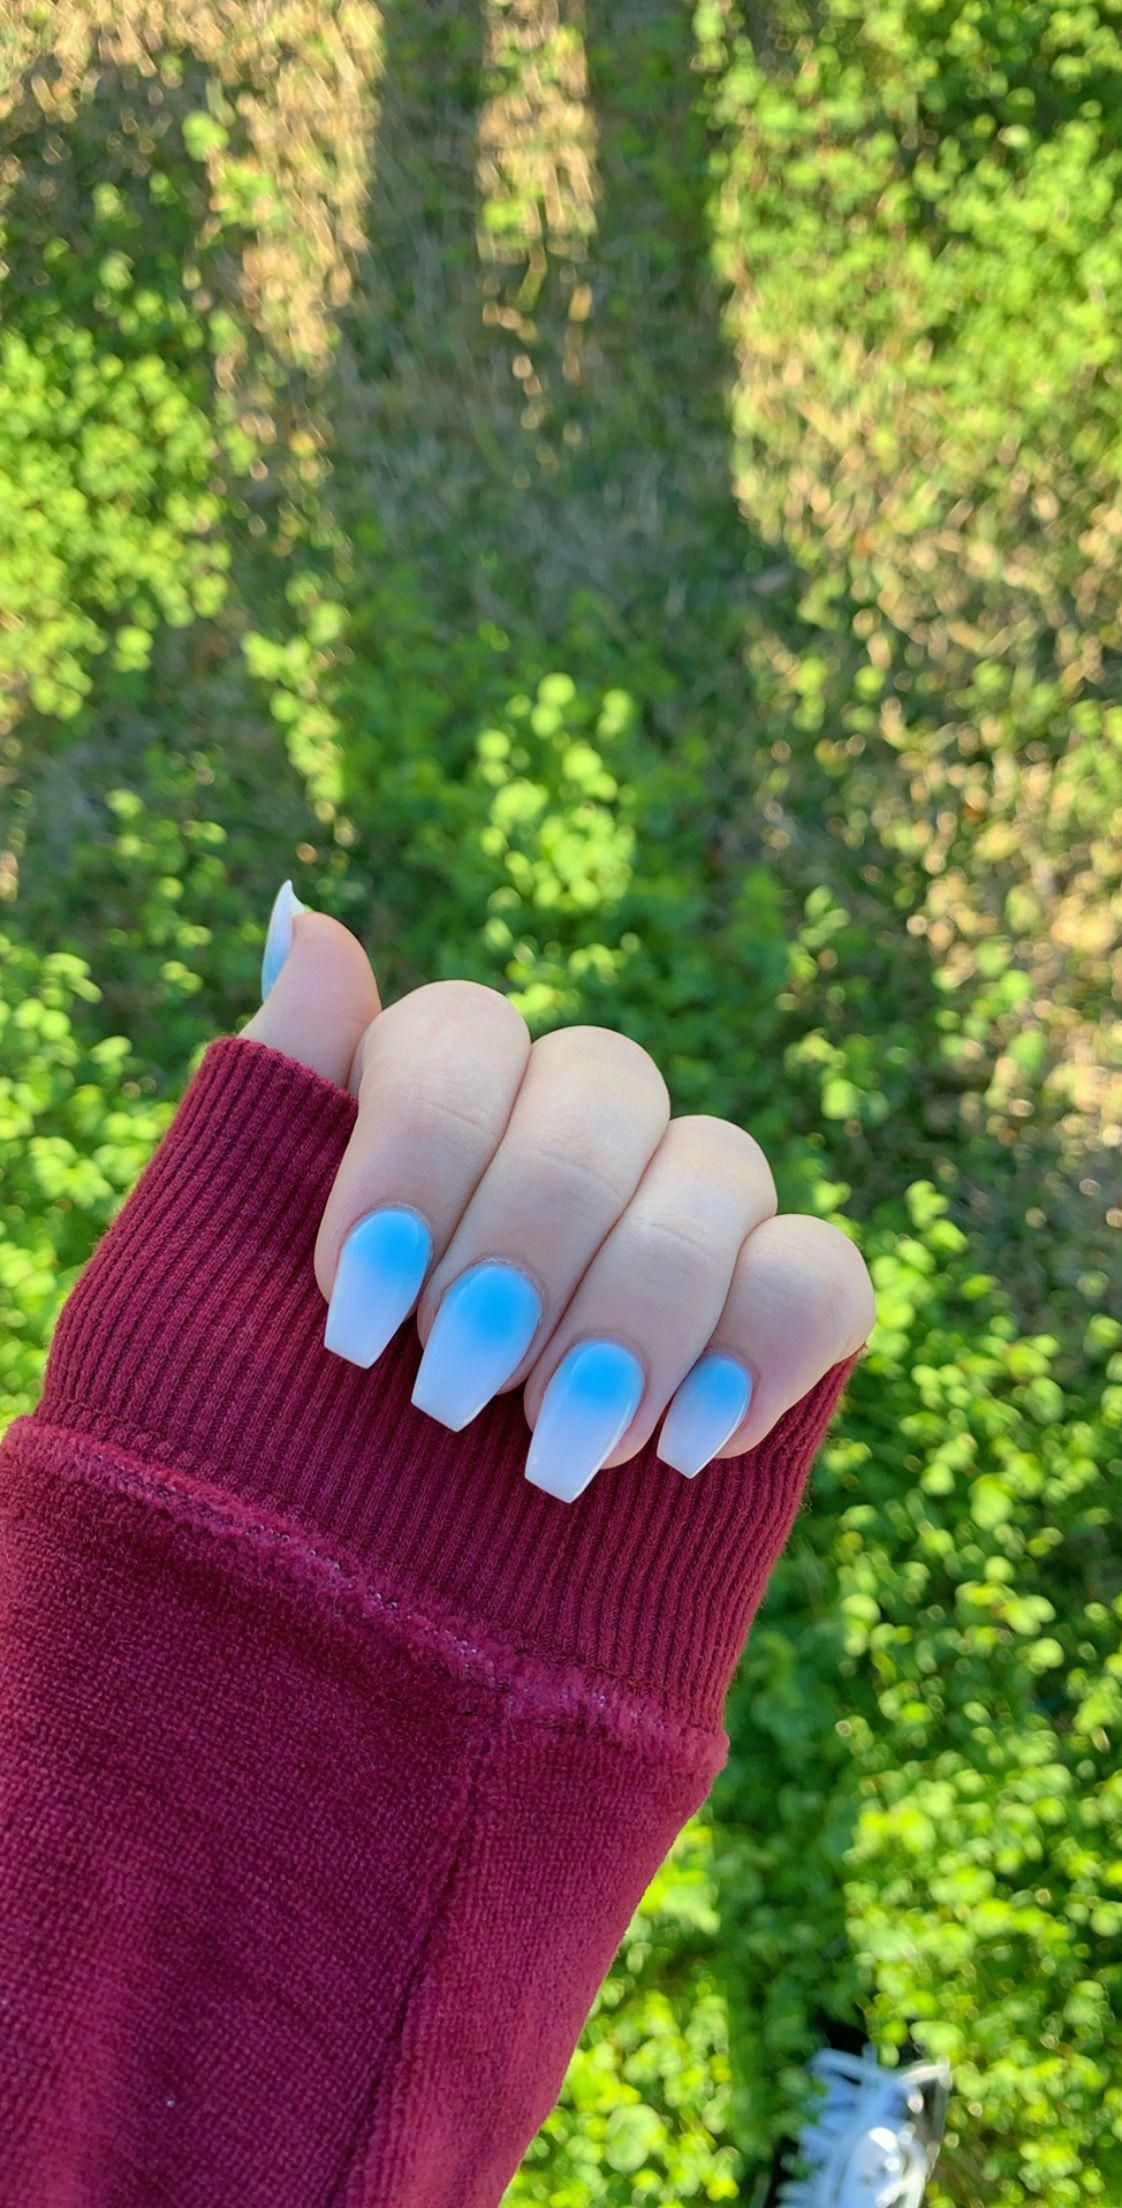 Blue To White Fade Acrylic Nails Coffin Shape Fade Nails Blue Nails Nailscoffin In 2020 Faded Nails Blue Acrylic Nails White Acrylic Nails